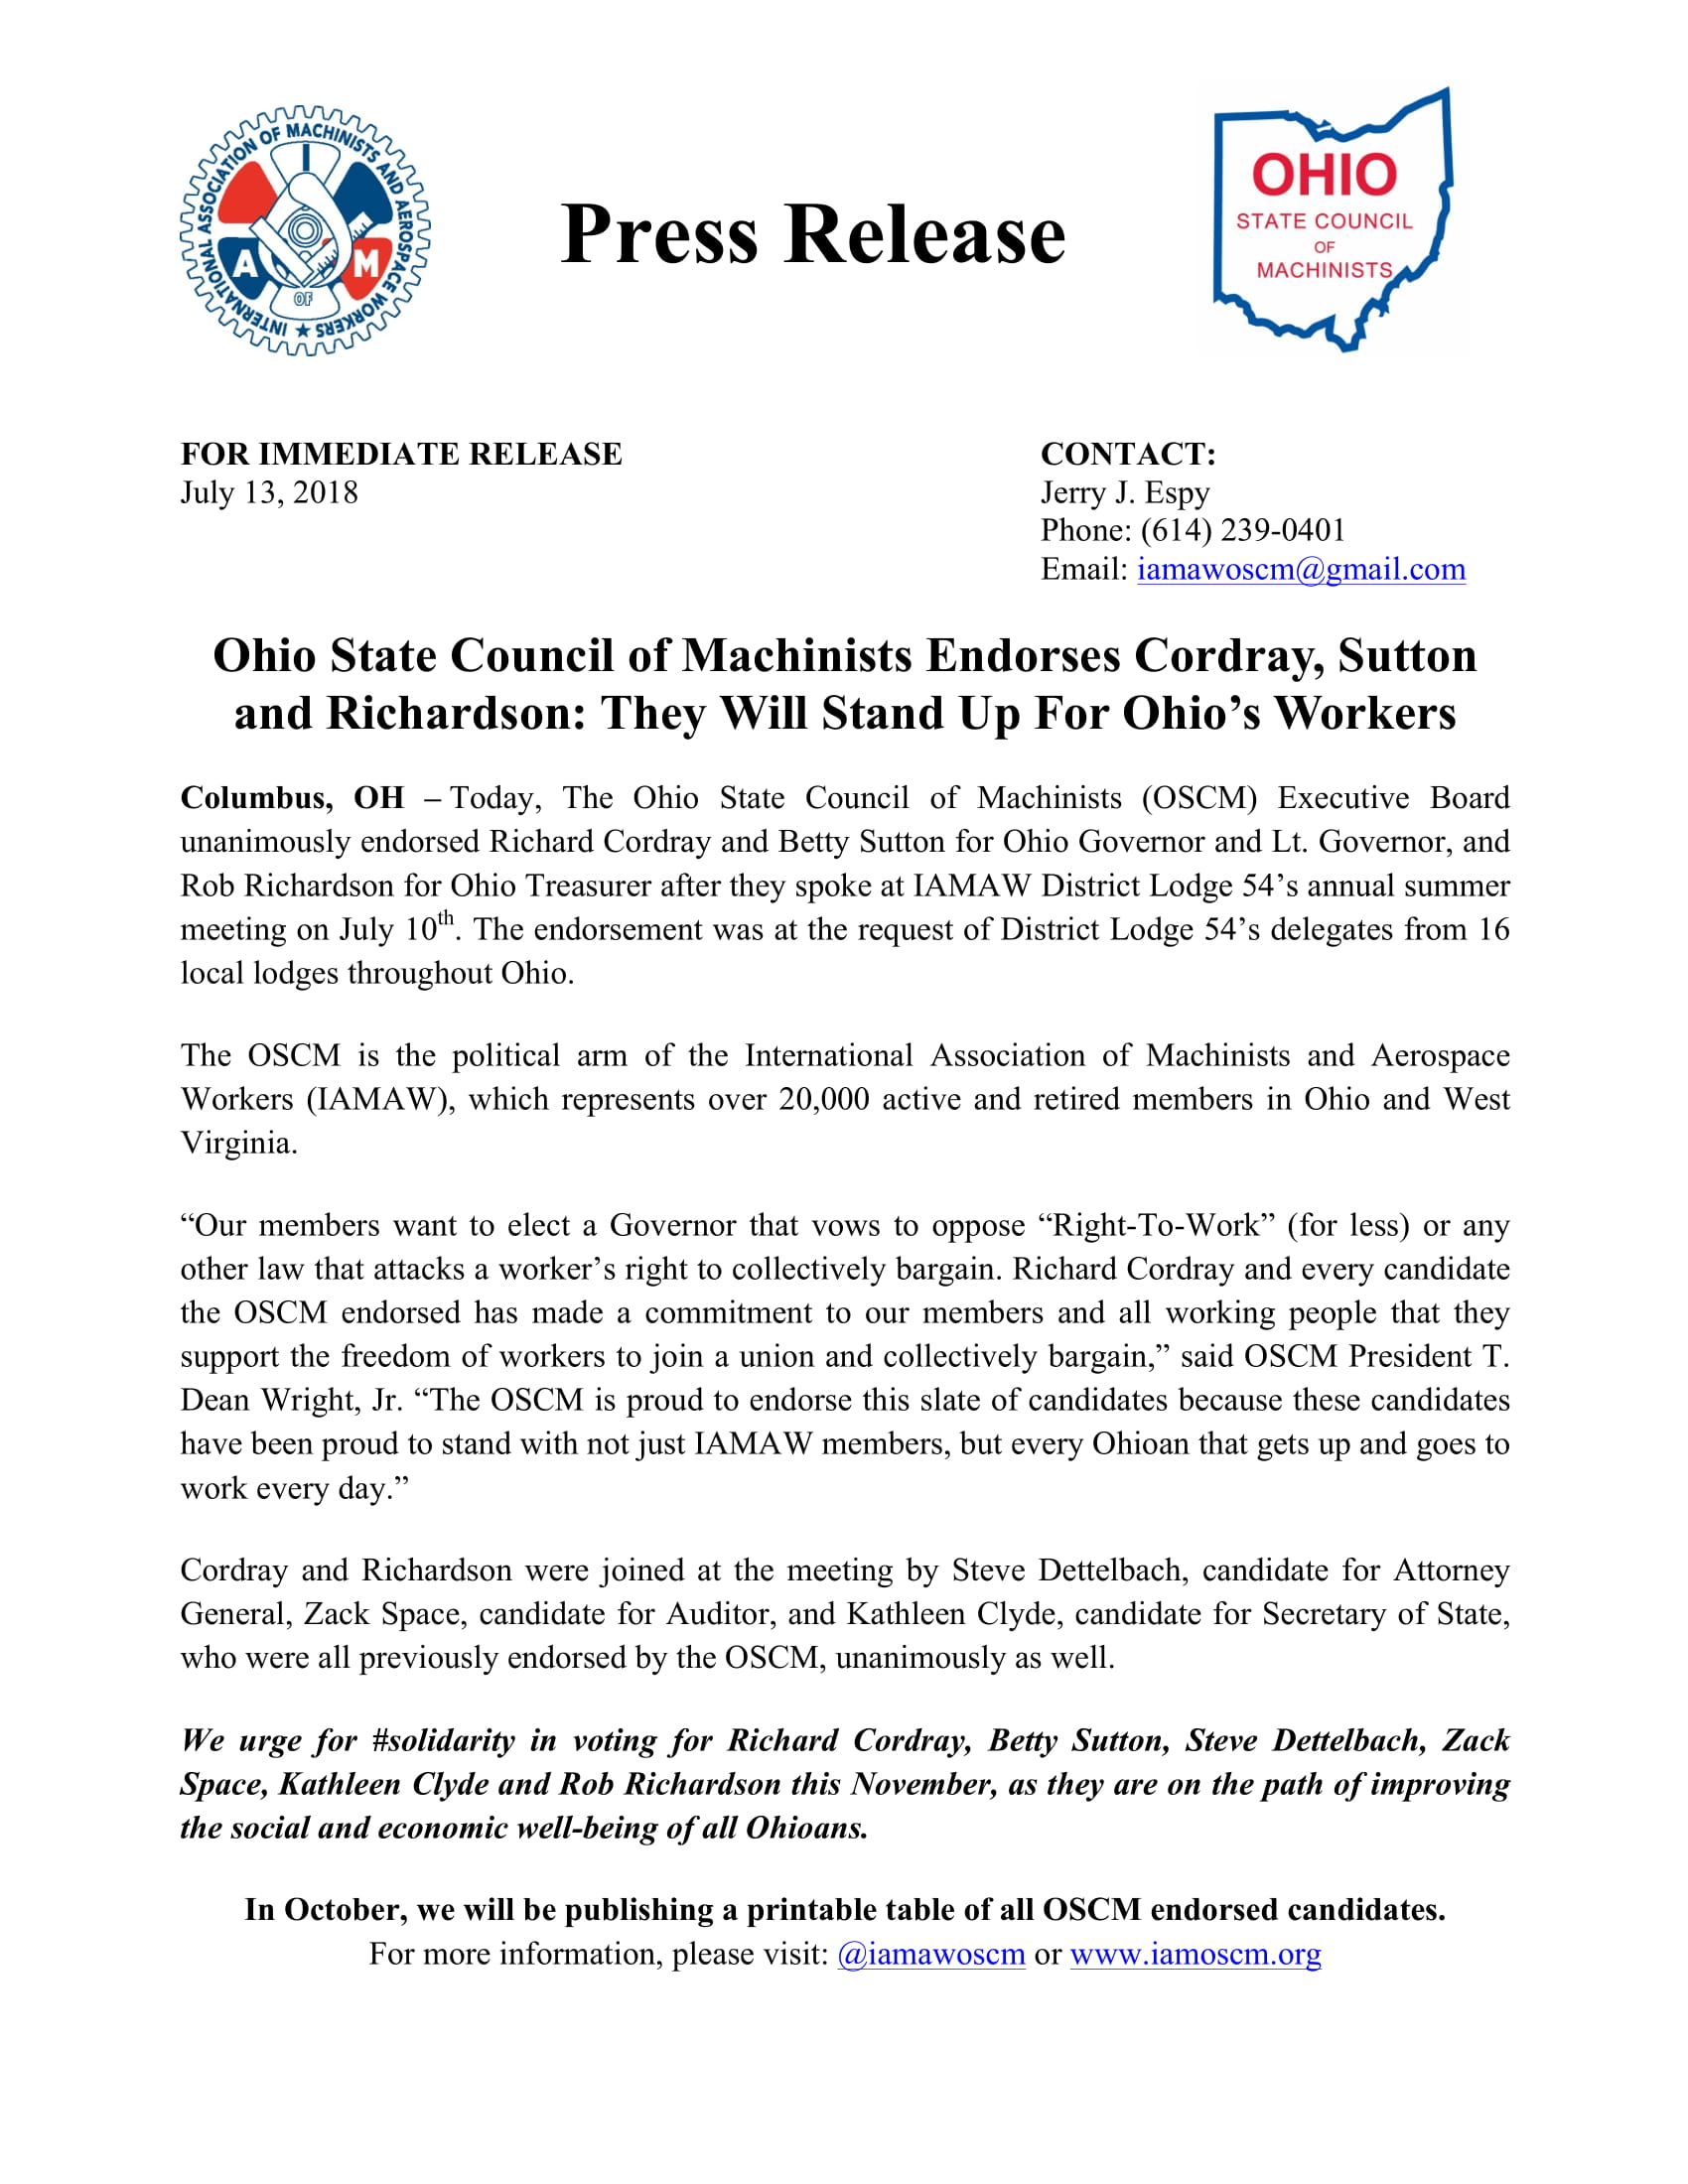 Press Release_OSCM Endorsements 071318-1.jpg